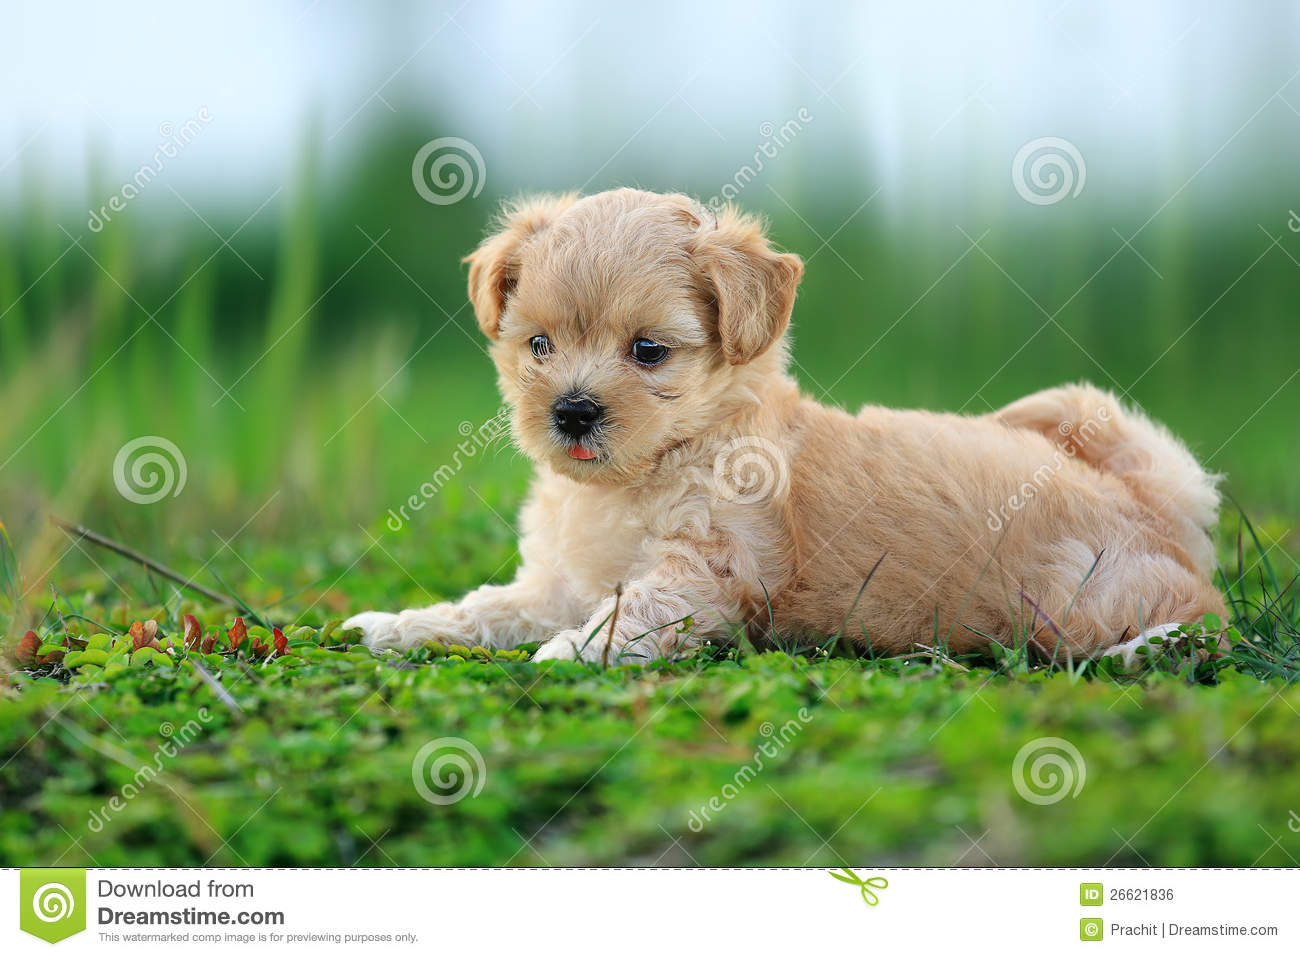 cute dog stock photo. image of lovely, cutes, animal - 26621836